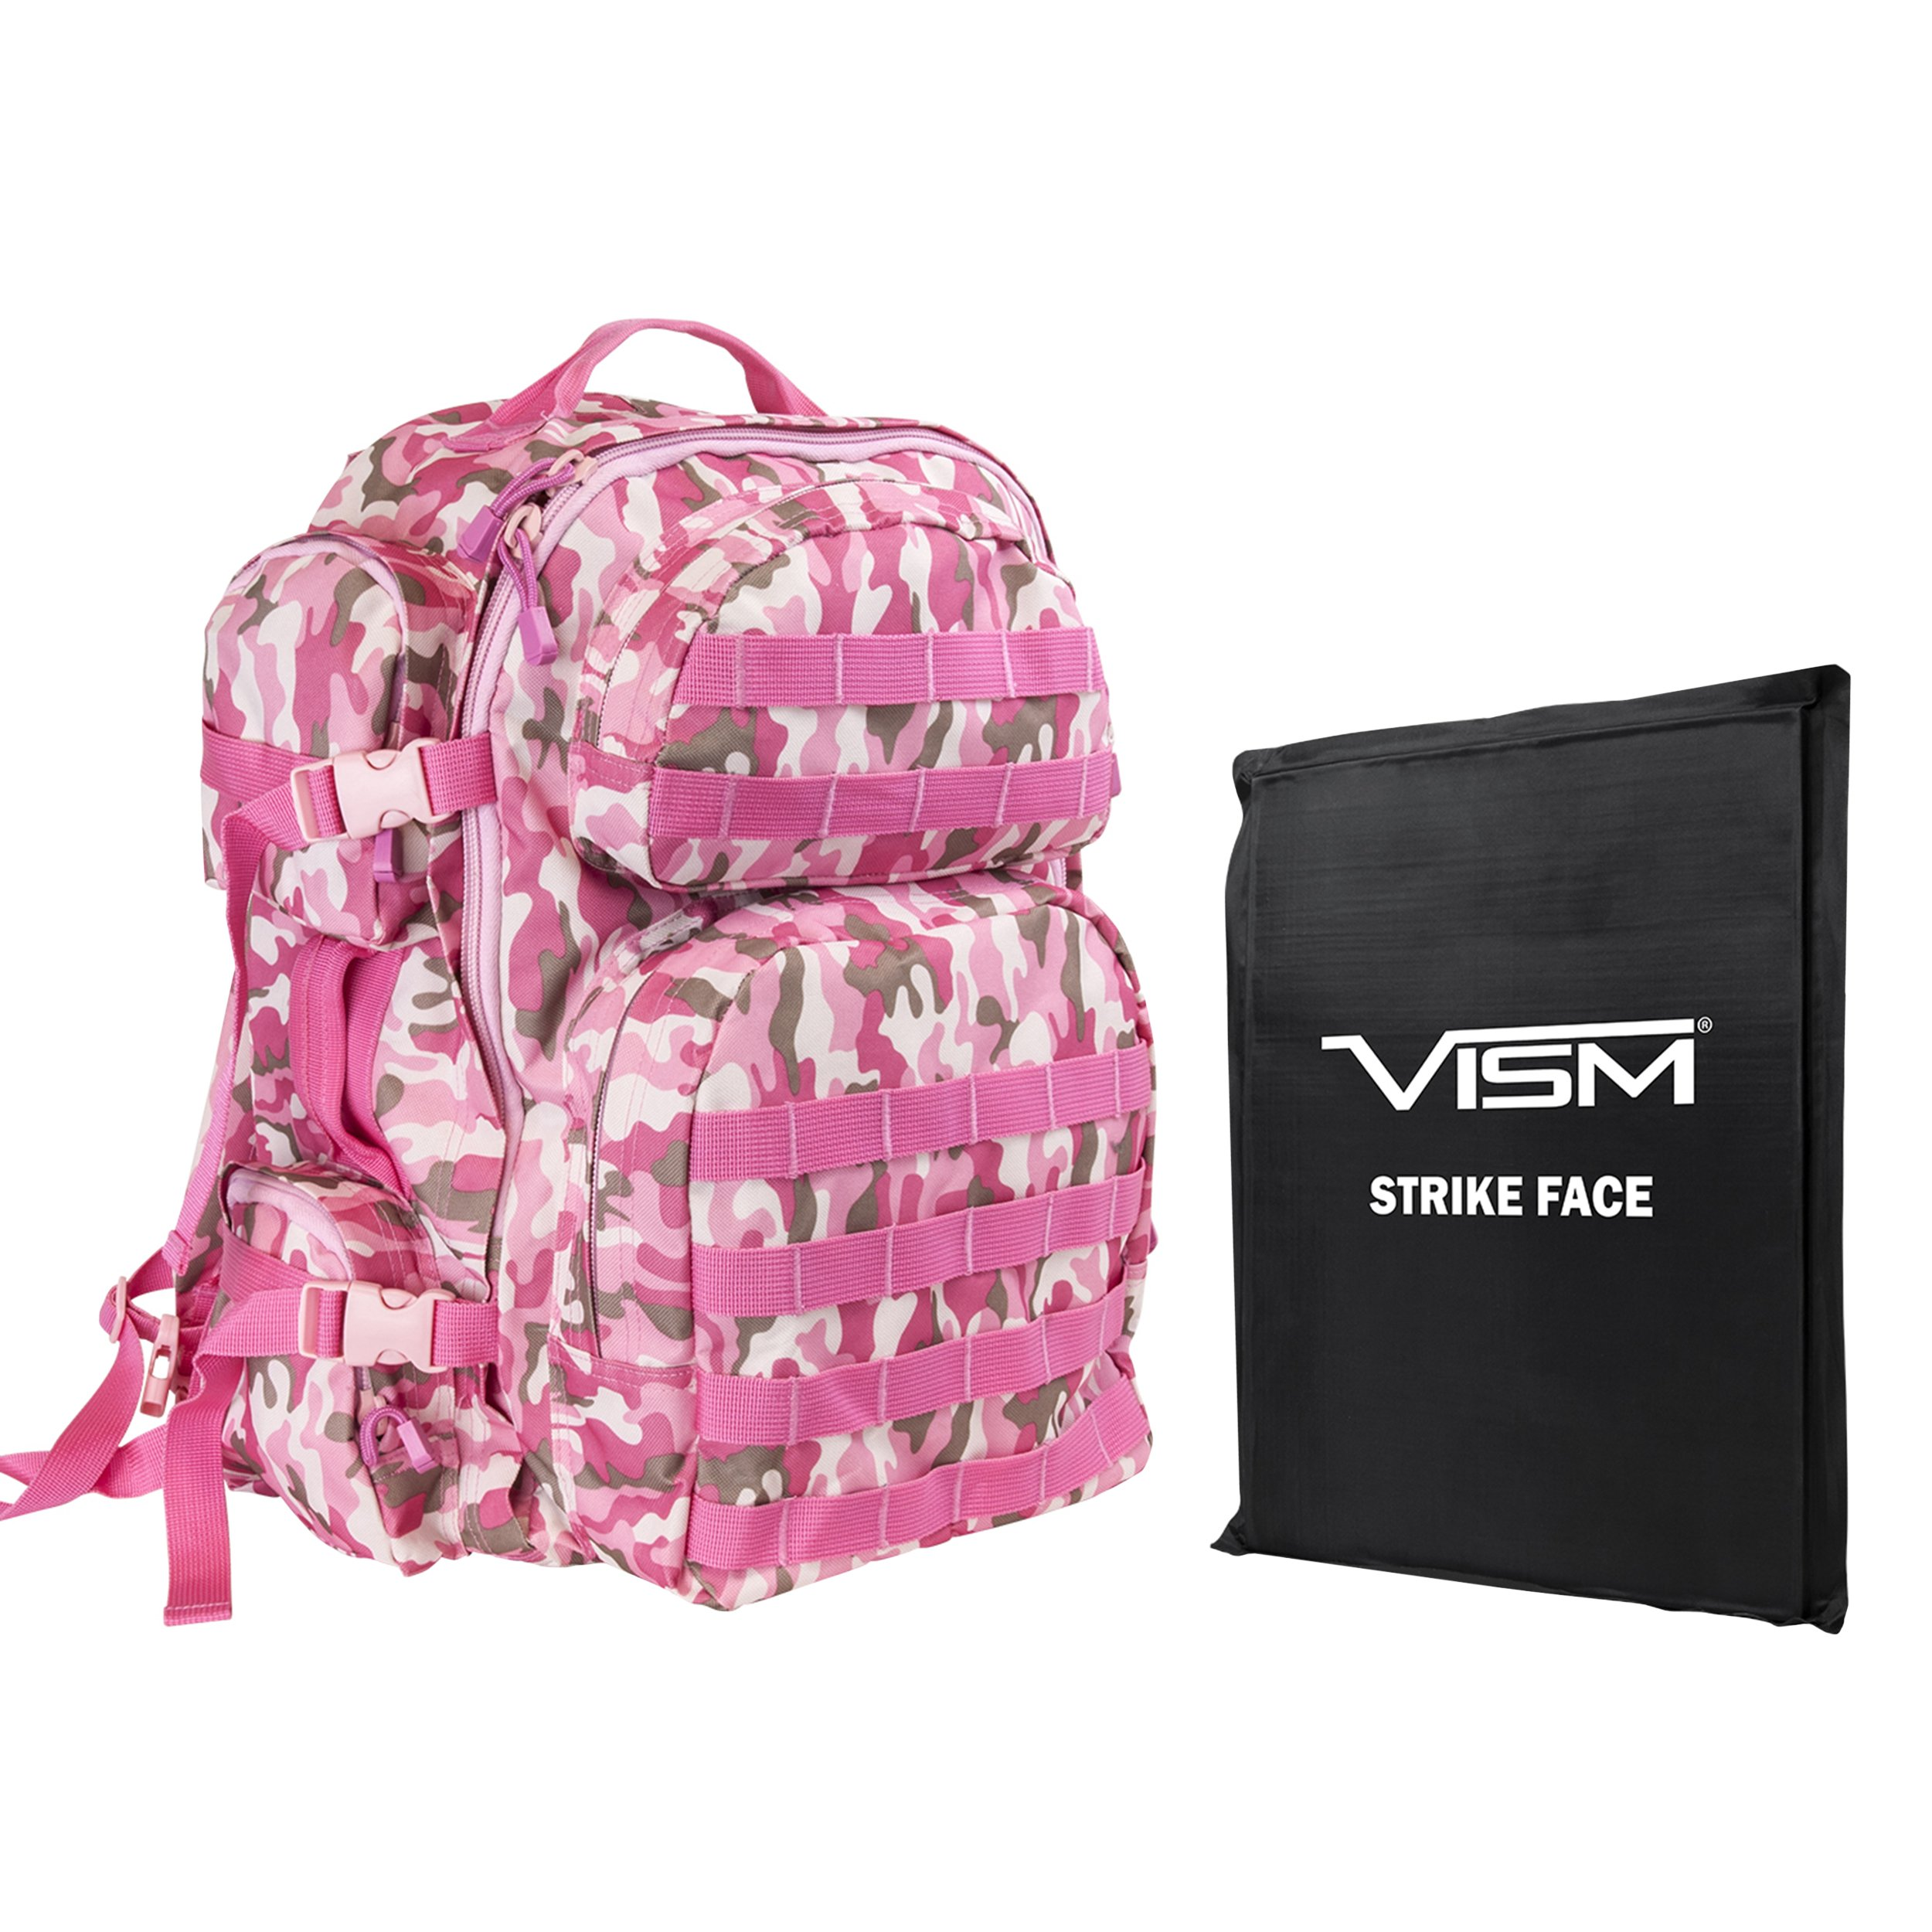 Del-ton Tactical Backpack/One 10 x 12-inch Soft Ballistic Panel Pink Camo Tactical Bag Accessories by Del-ton